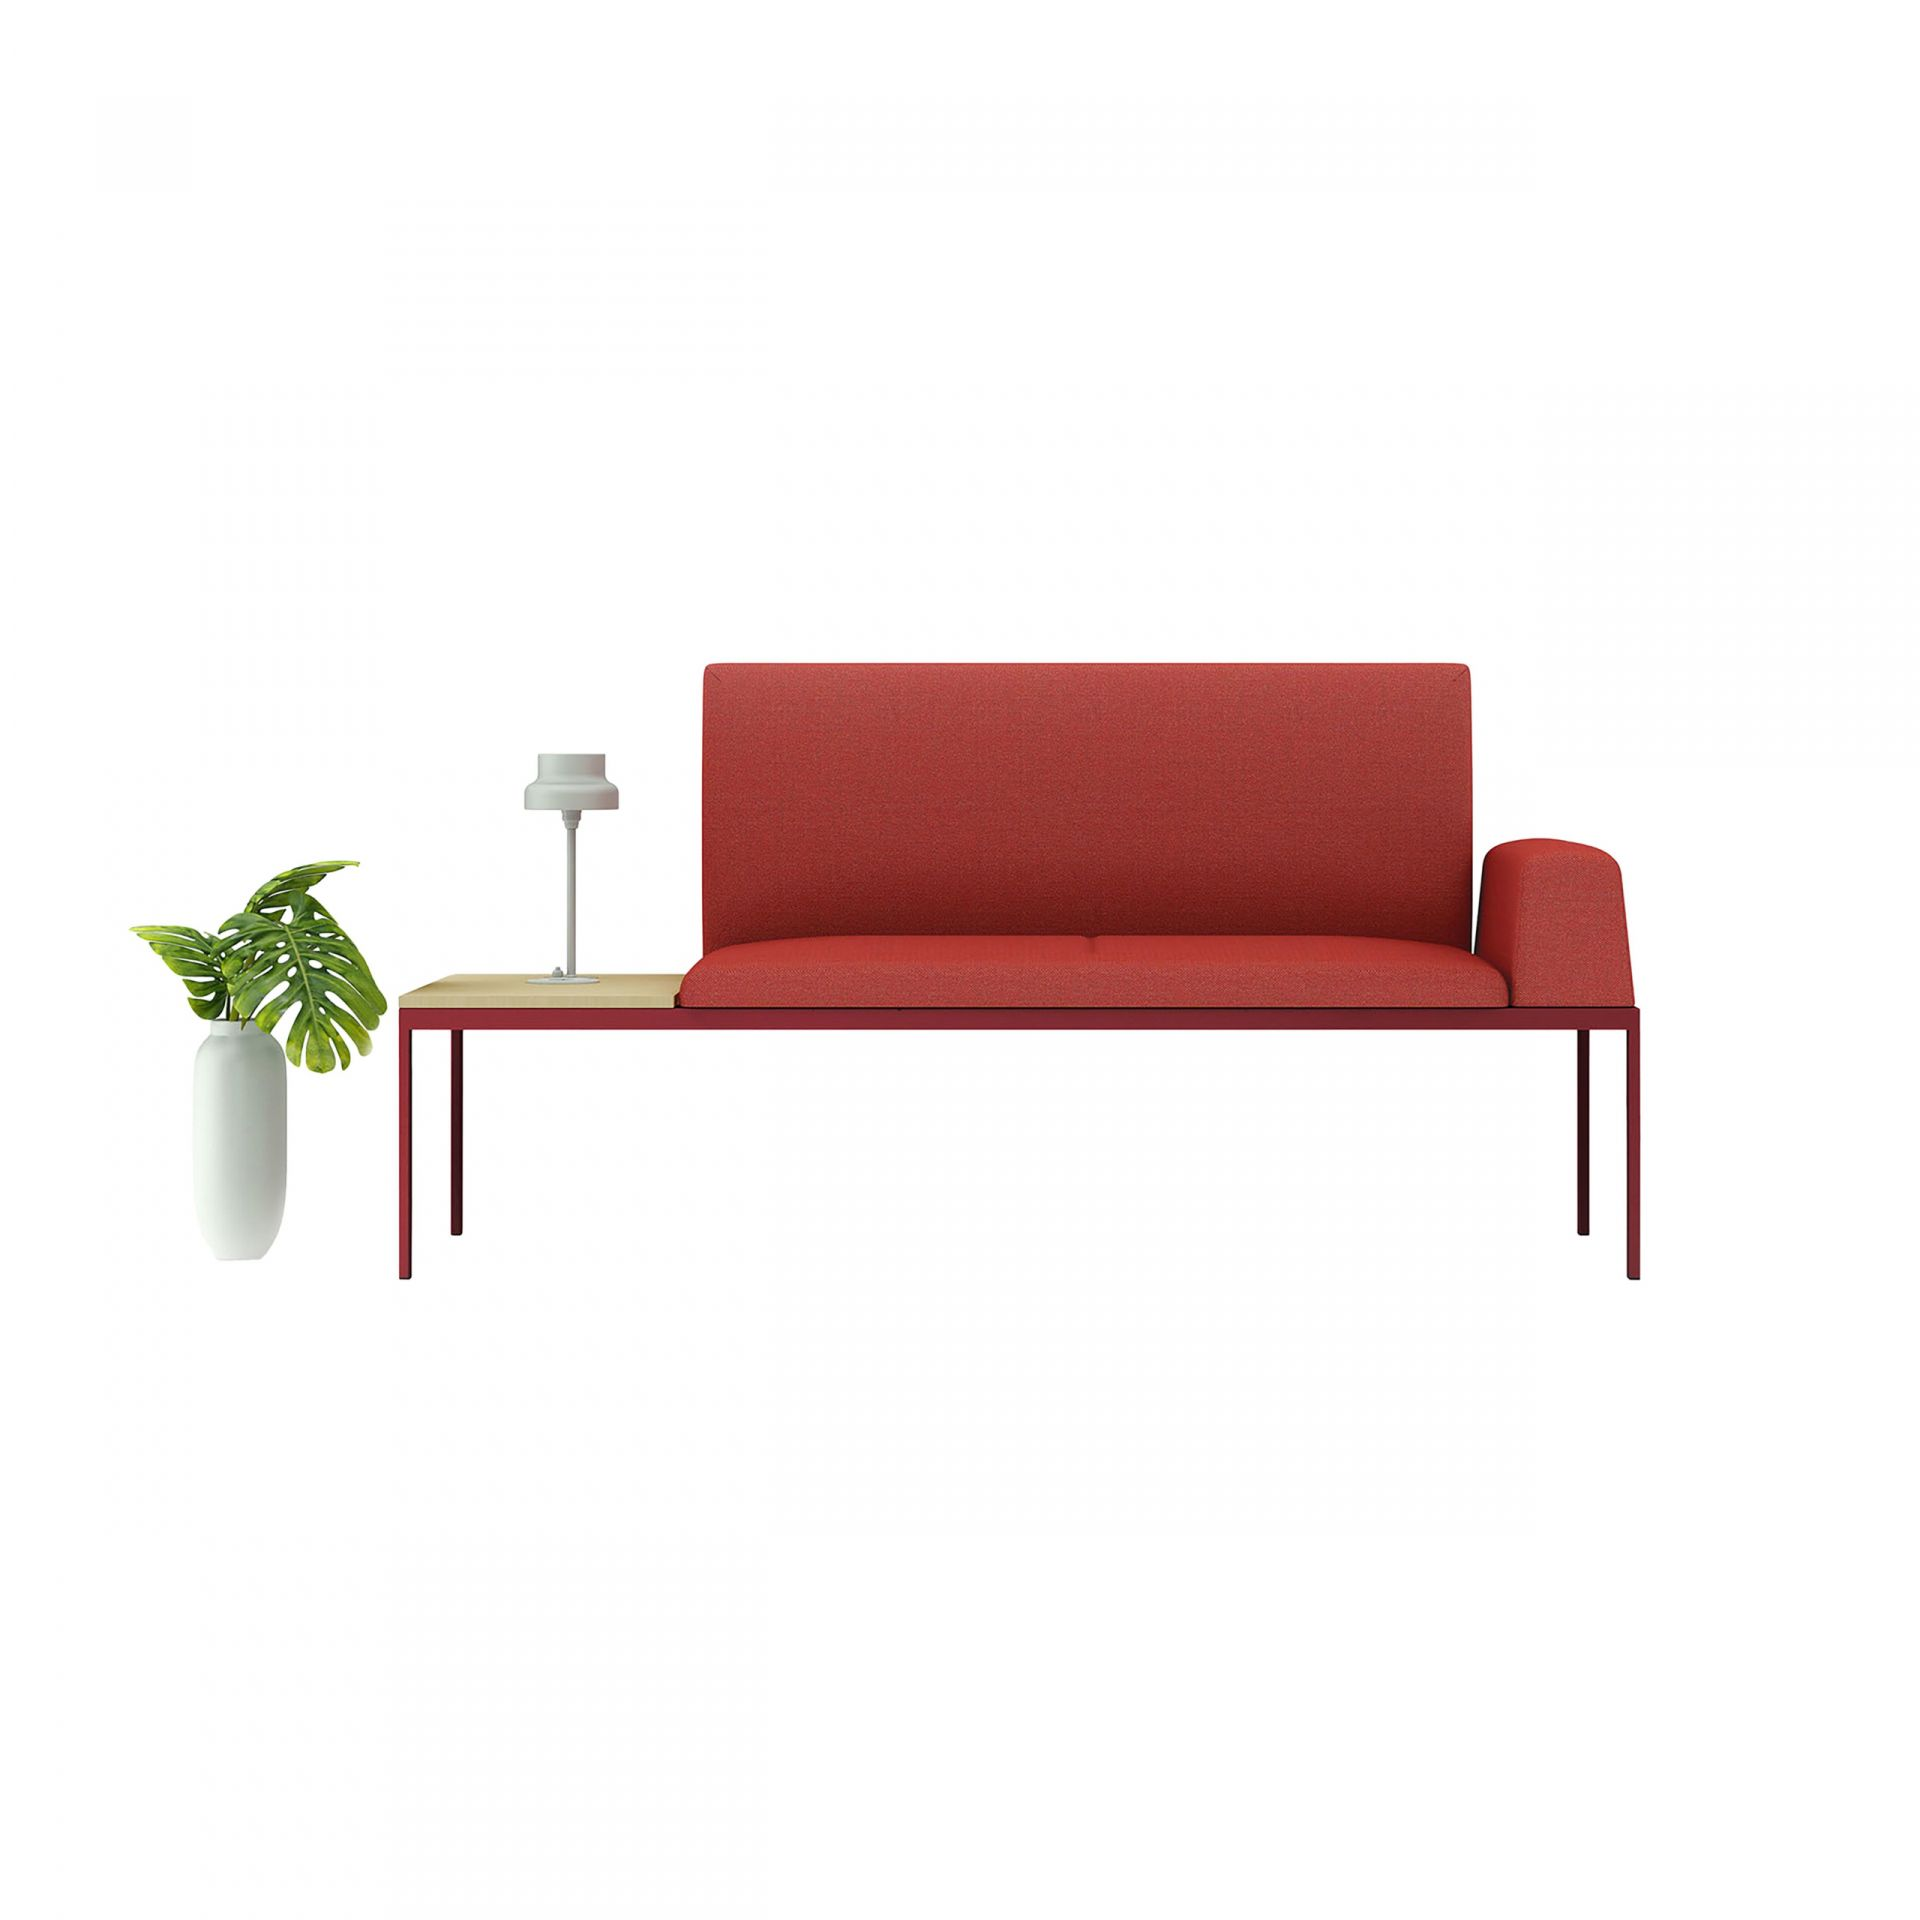 Create Seating Soffa och loungebord